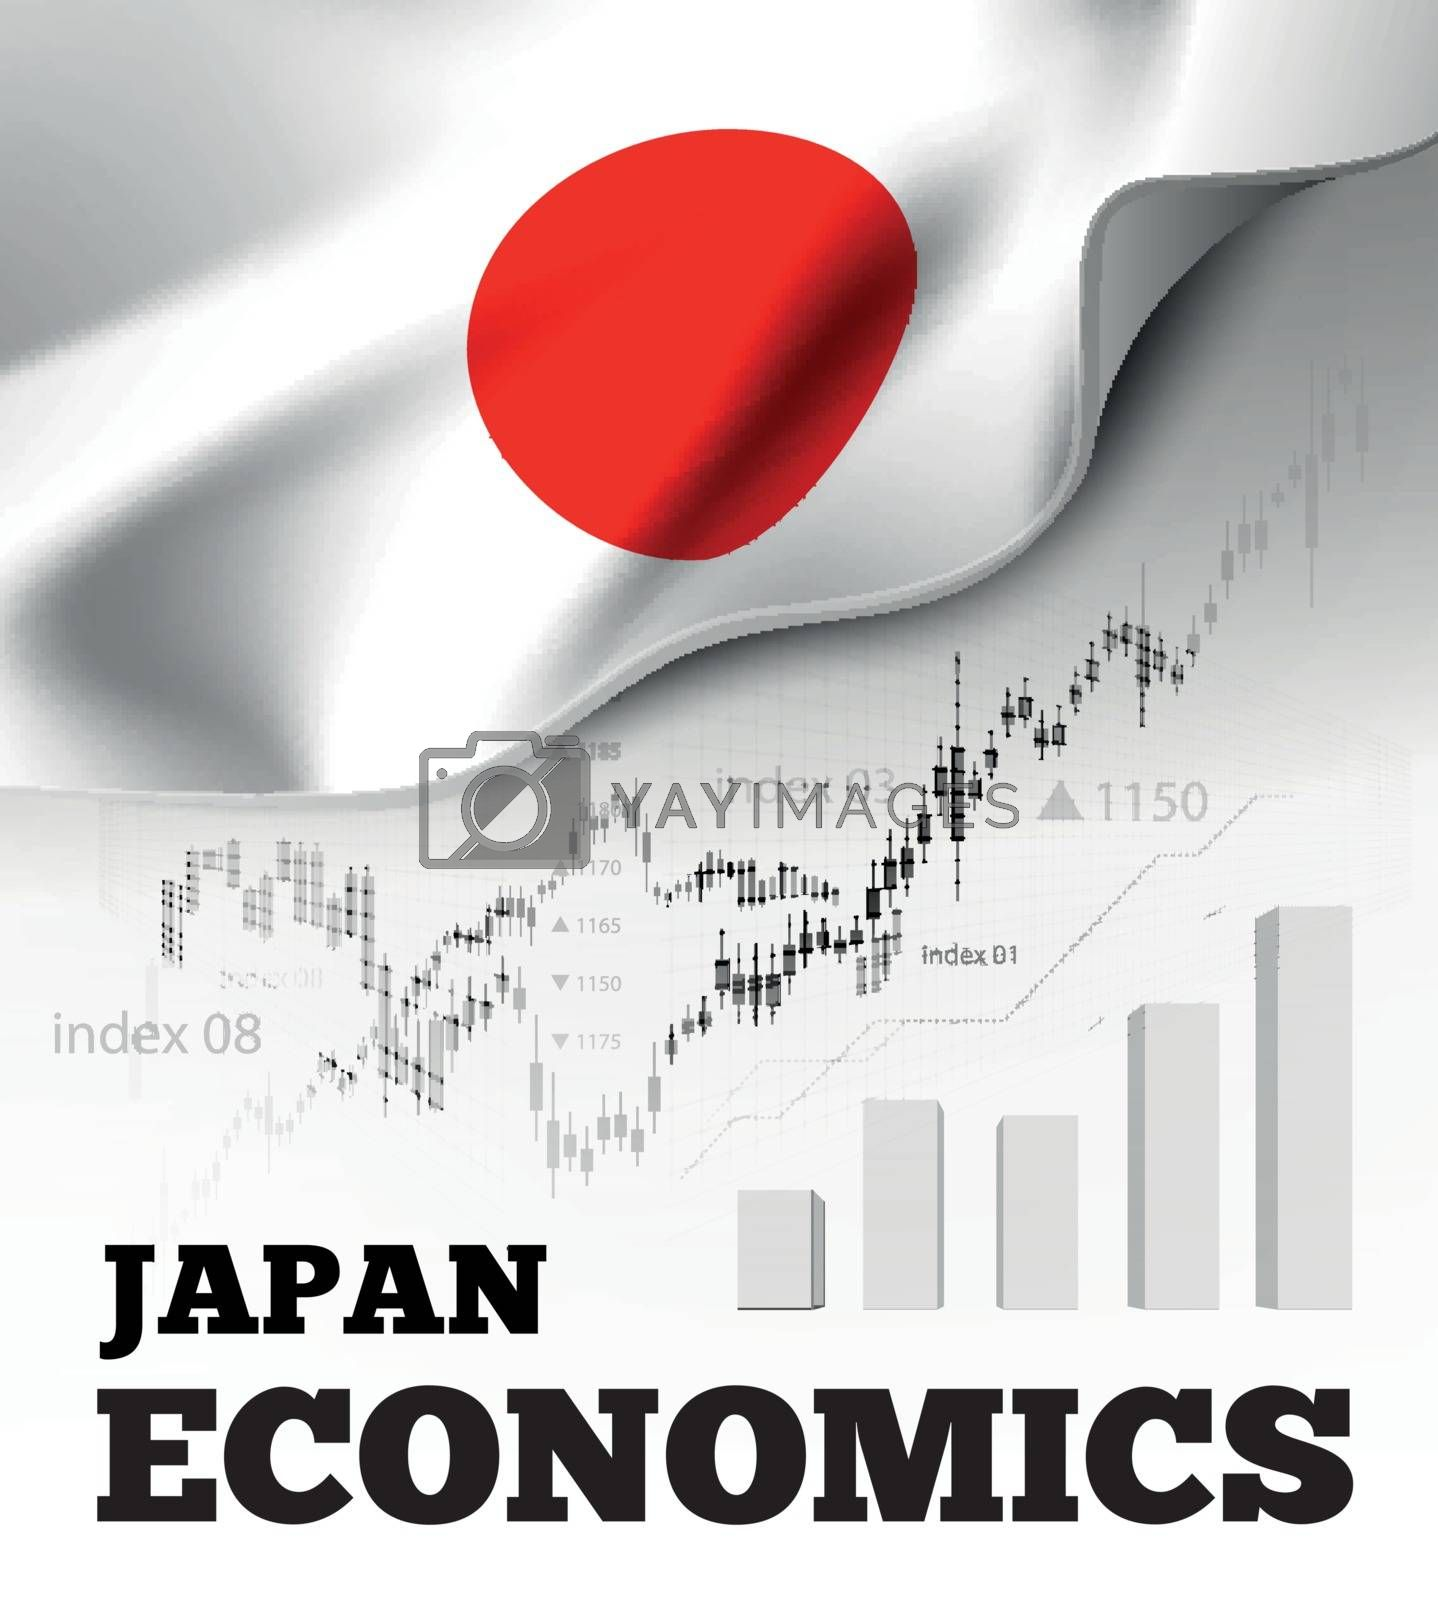 Japan economics vector illustration with japanese flag and business chart, bar chart stock numbers bull market, uptrend line graph symbolizes the welfare growth